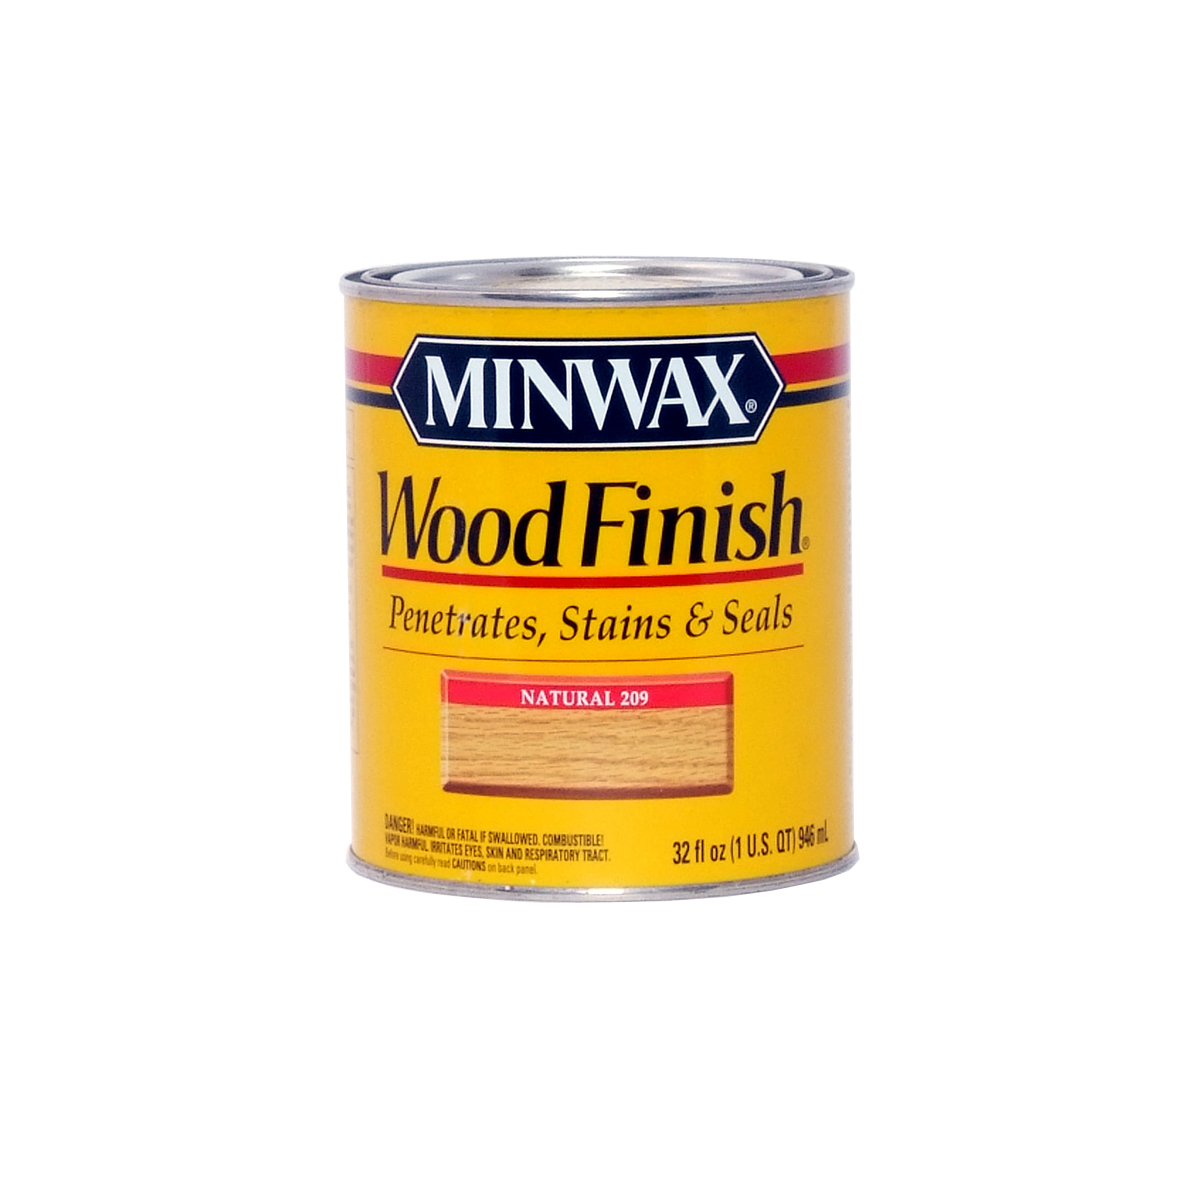 Minwax Natural 209 Stain